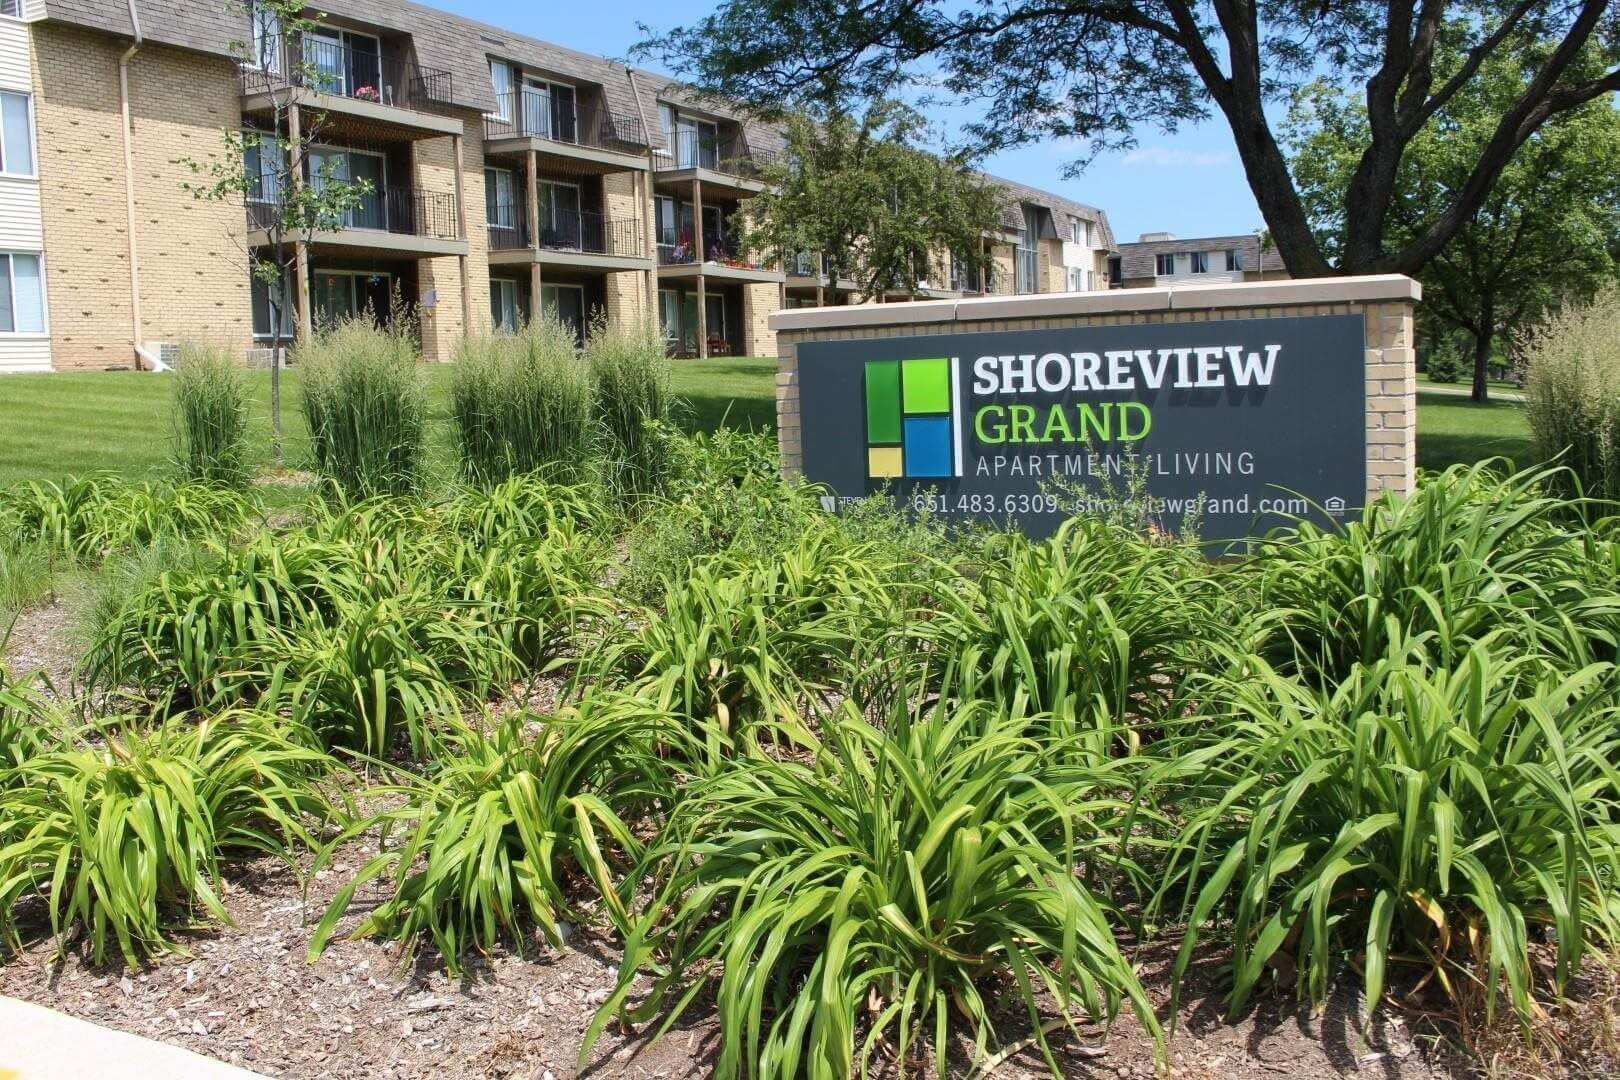 Lovely Rock Creek Park Views at Shoreview Grand, Shoreview, MN 55126